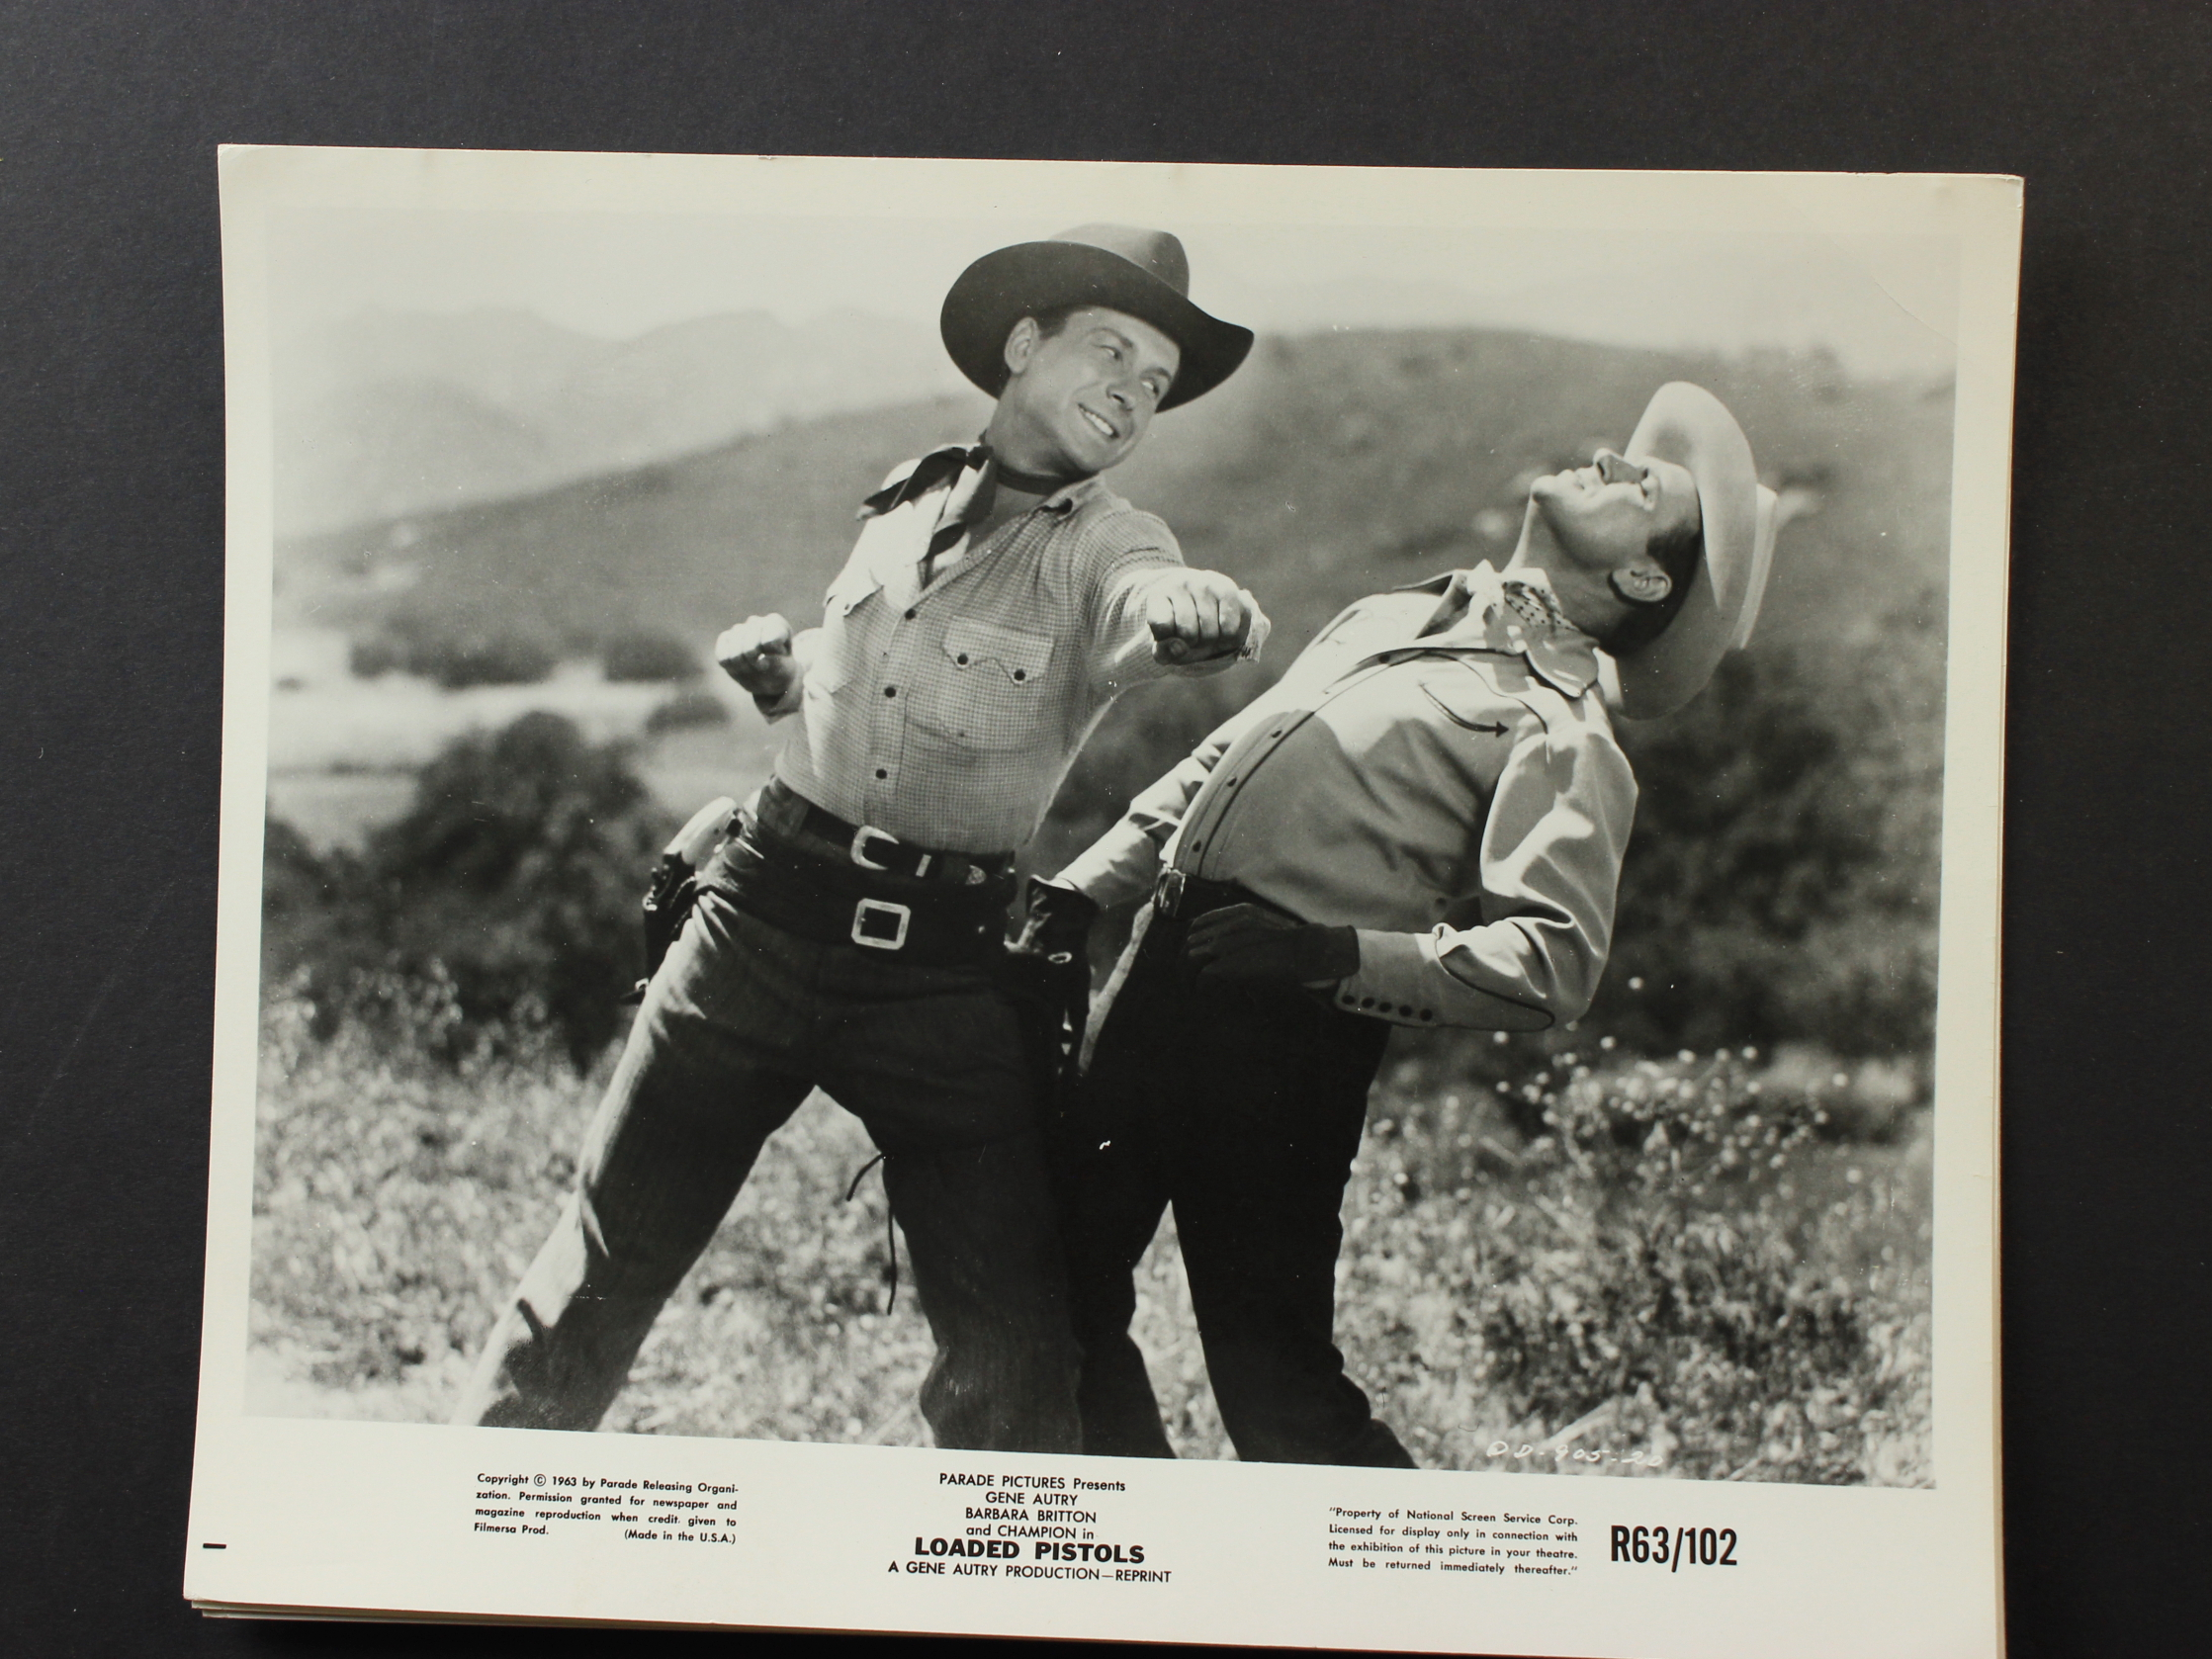 Gene Autry and Russell Arms in Loaded Pistols (1948)